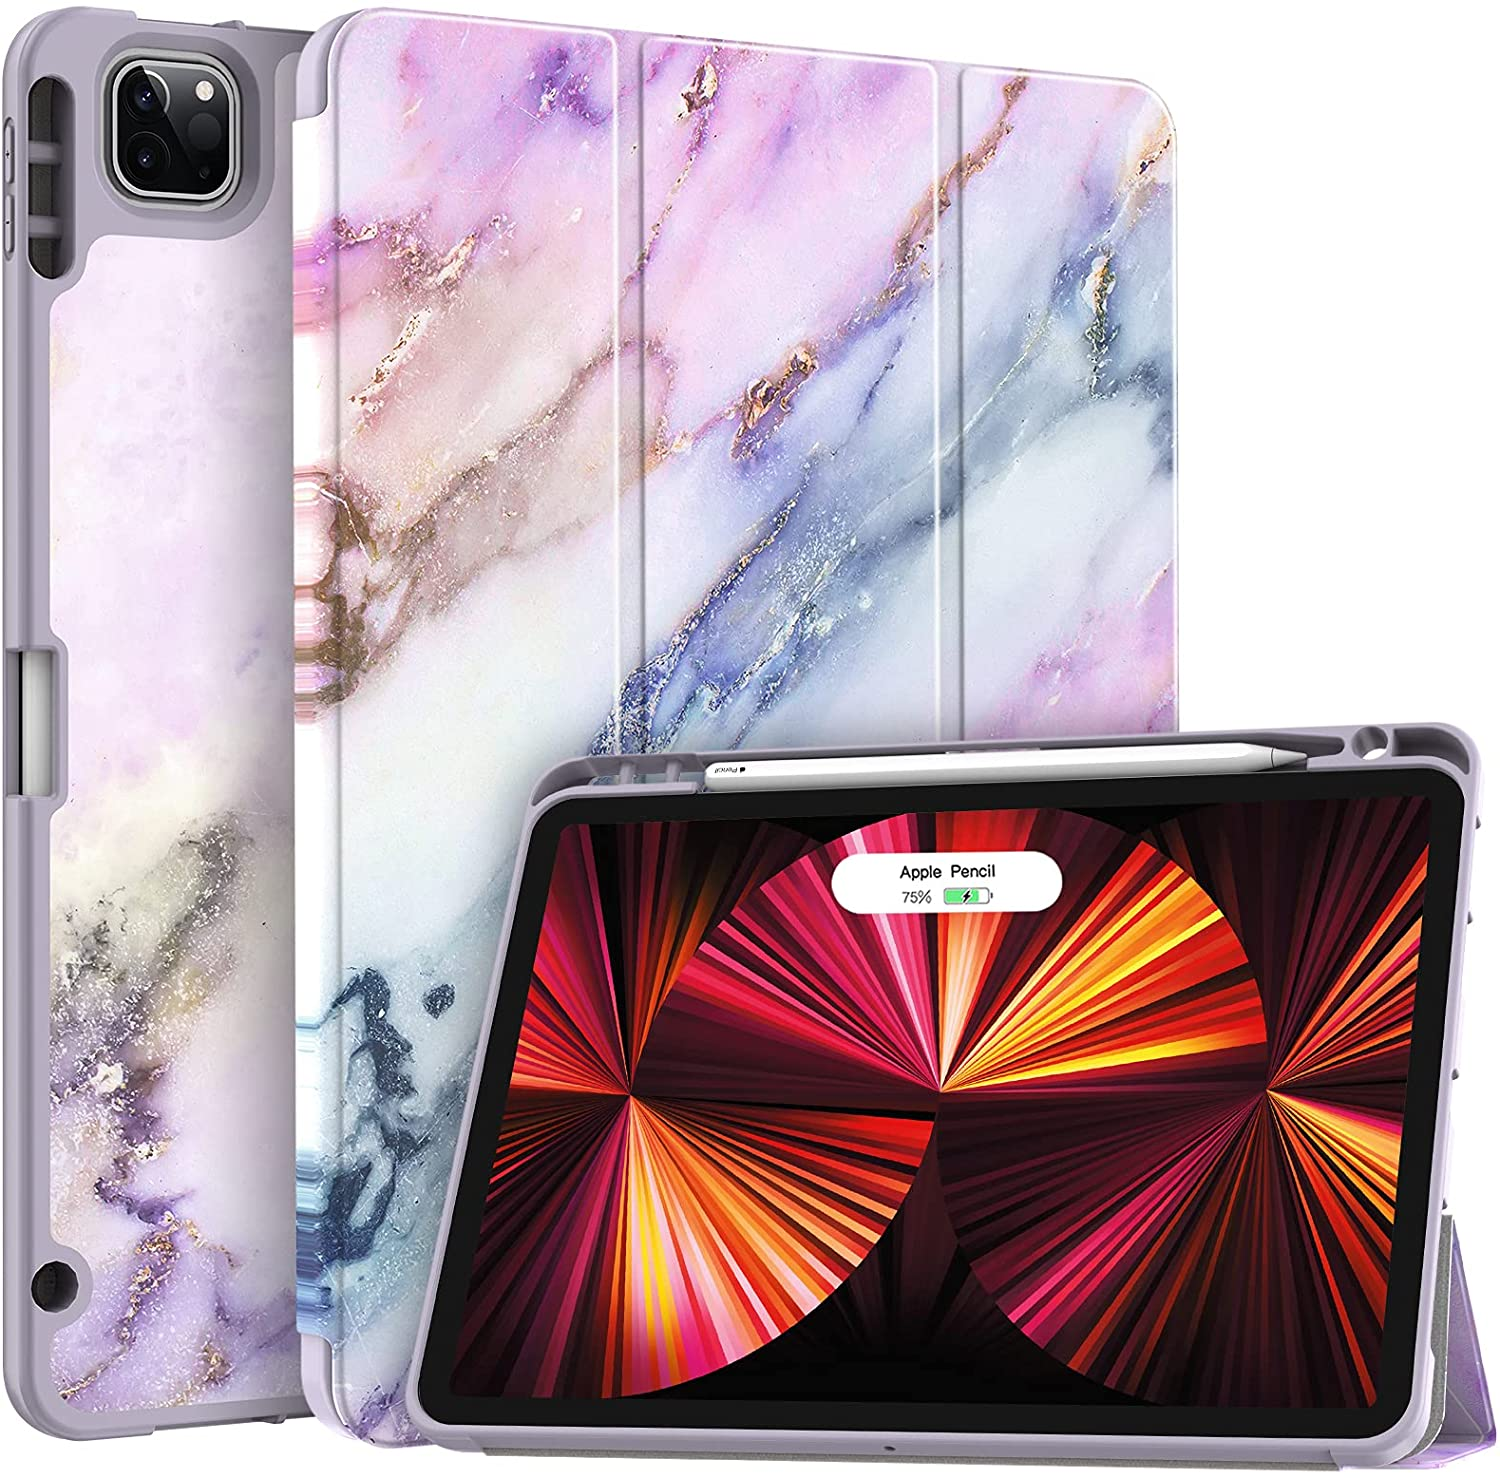 Soke New iPad Pro 11 Case 2021 with Pencil Holder - [Full Body Protection + 2nd Gen Apple Pencil Charging + Auto Wake/Sleep], Soft TPU Back Cover for 2021 iPad Pro 11 inch(Pink Marble)